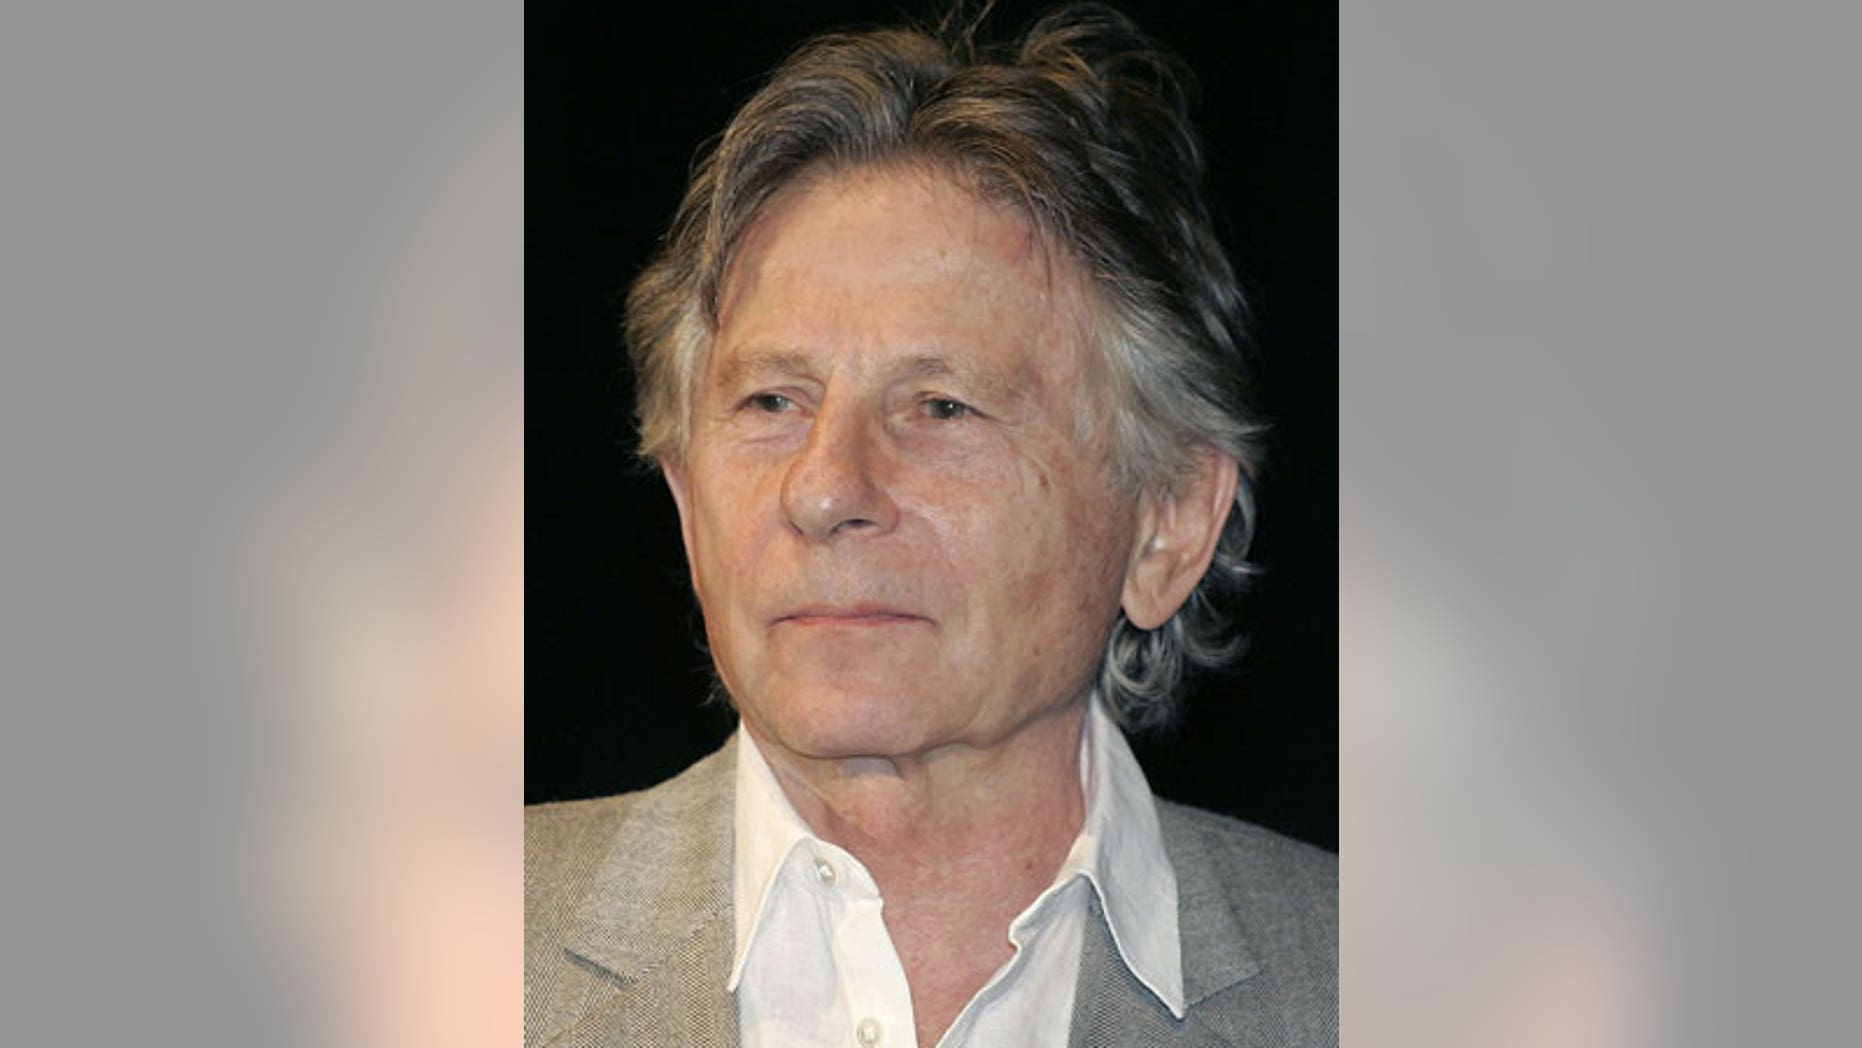 Polanski has two films in the works, both of which will film overseas.